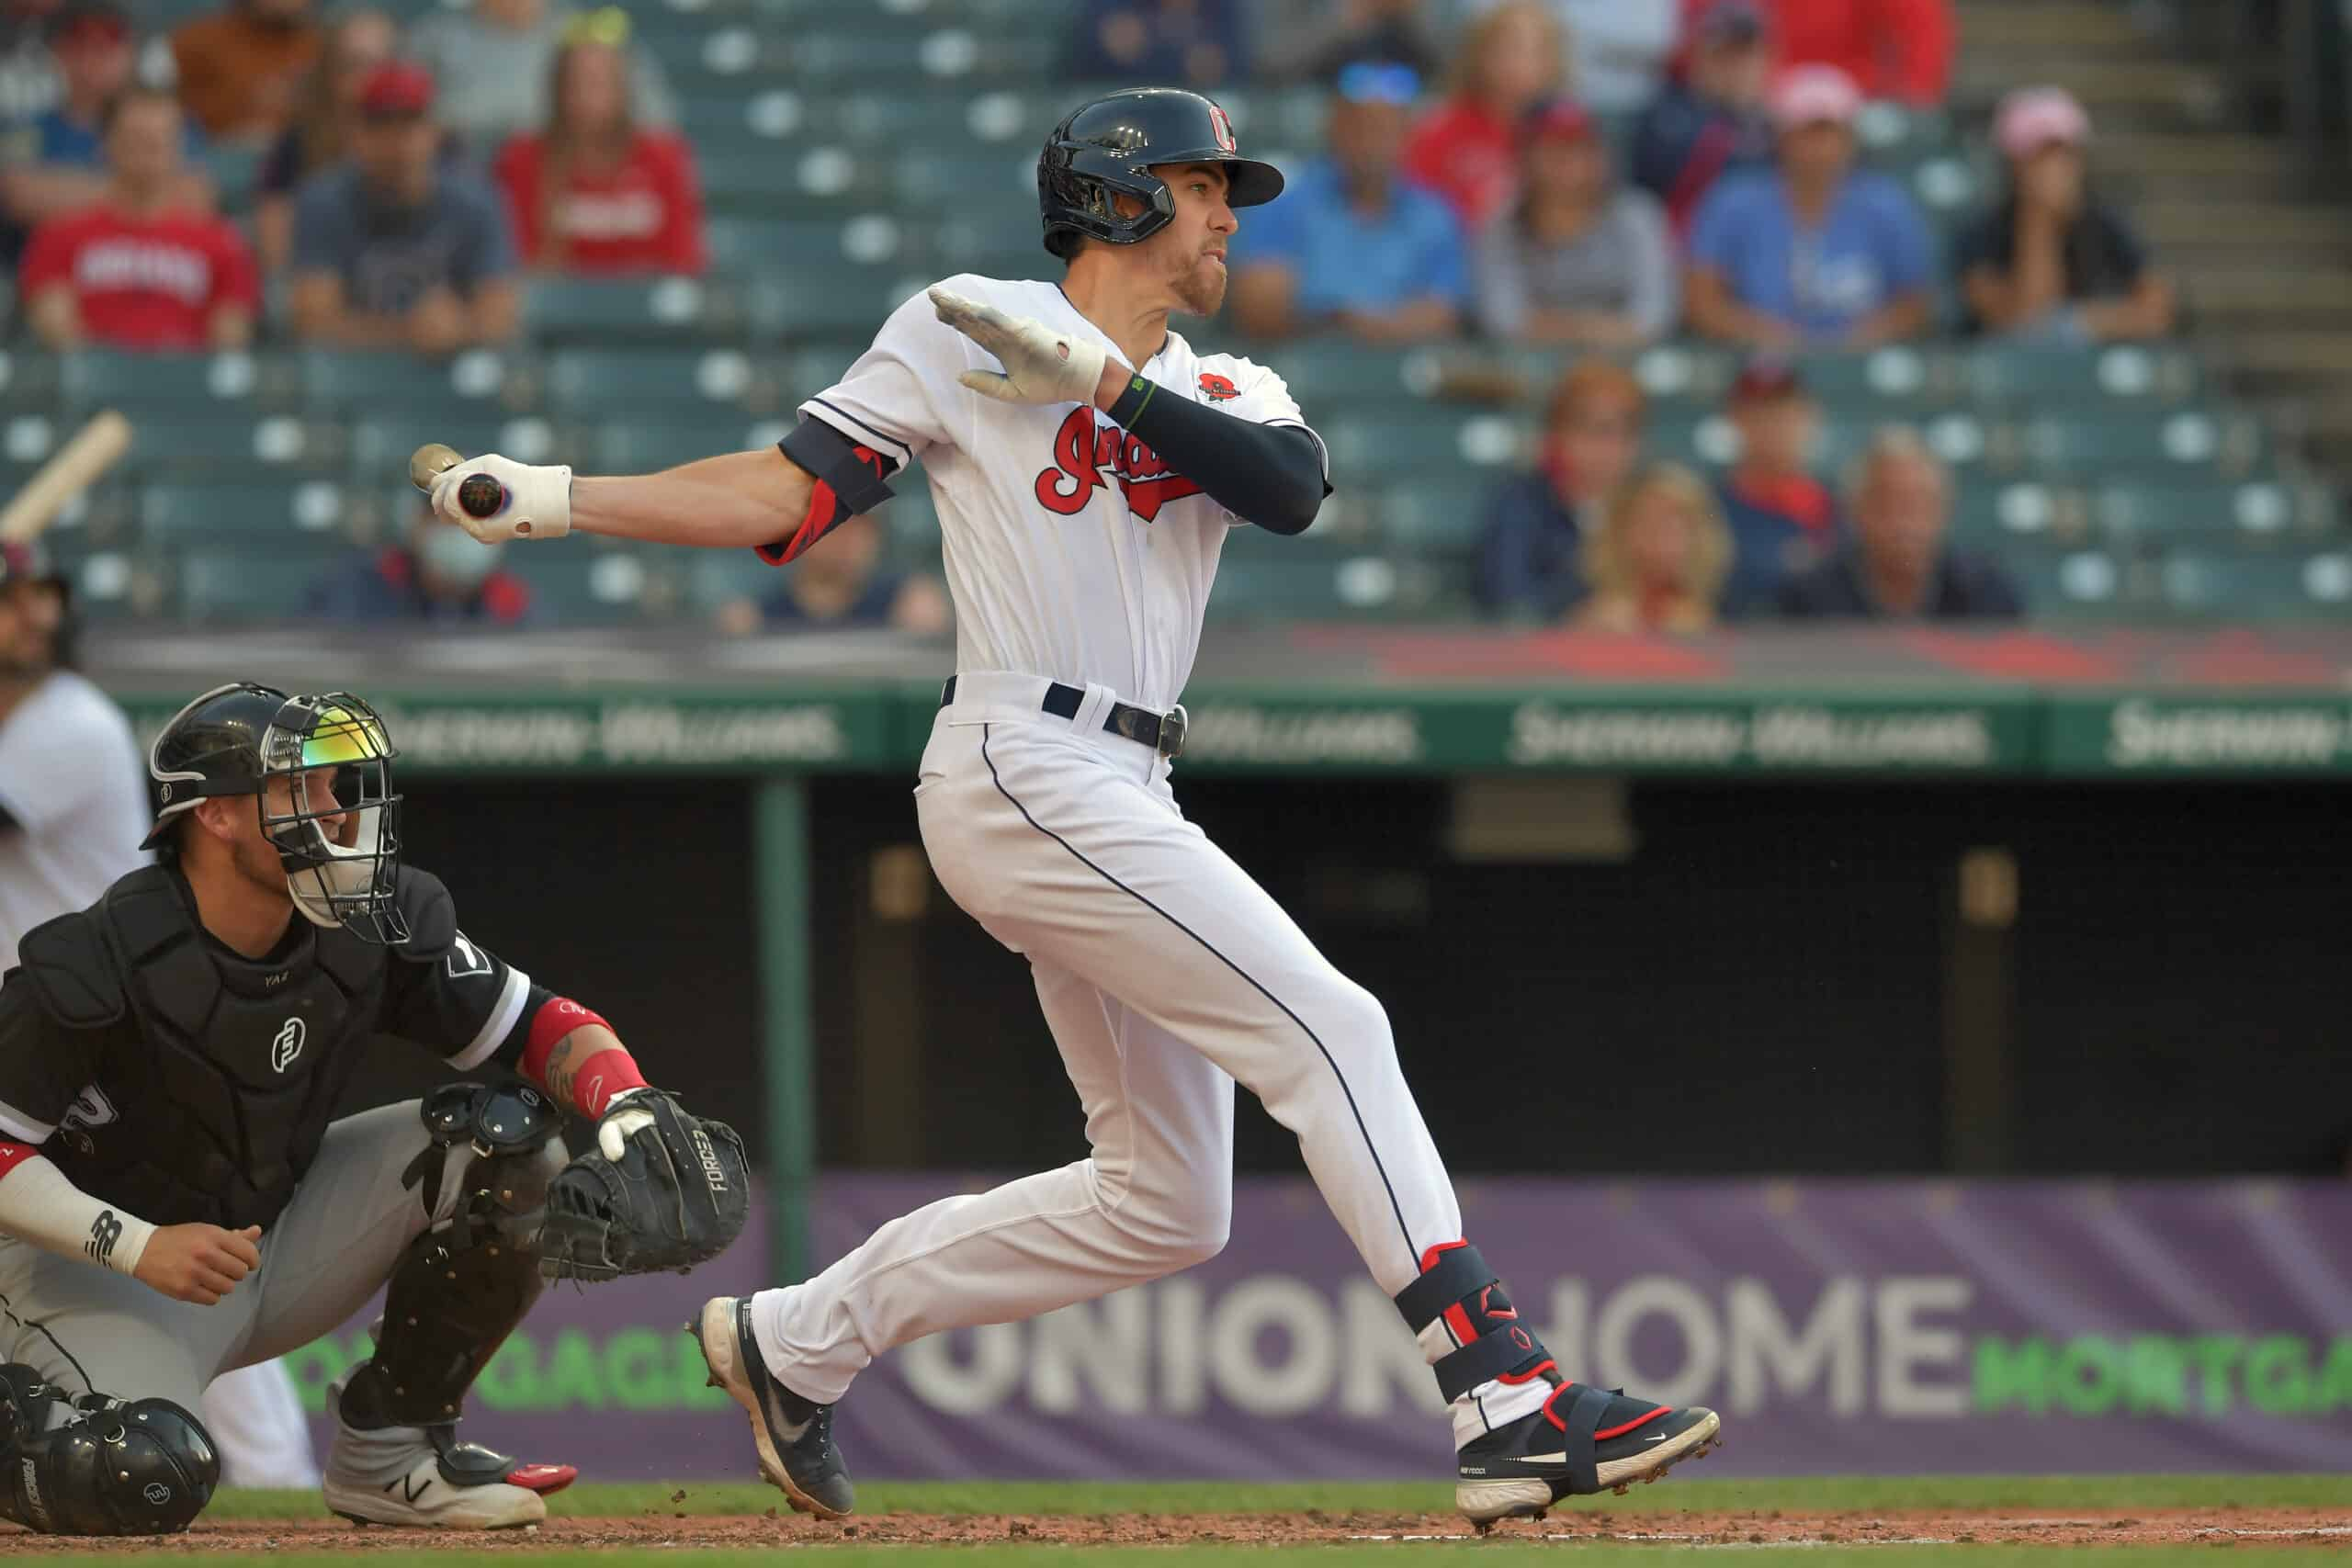 Bradley Zimmer #4 of the Cleveland Indians hits an RBI single during the second inning of game two of a doubleheader against the Chicago White Sox at Progressive Field on May 31, 2021 in Cleveland, Ohio.